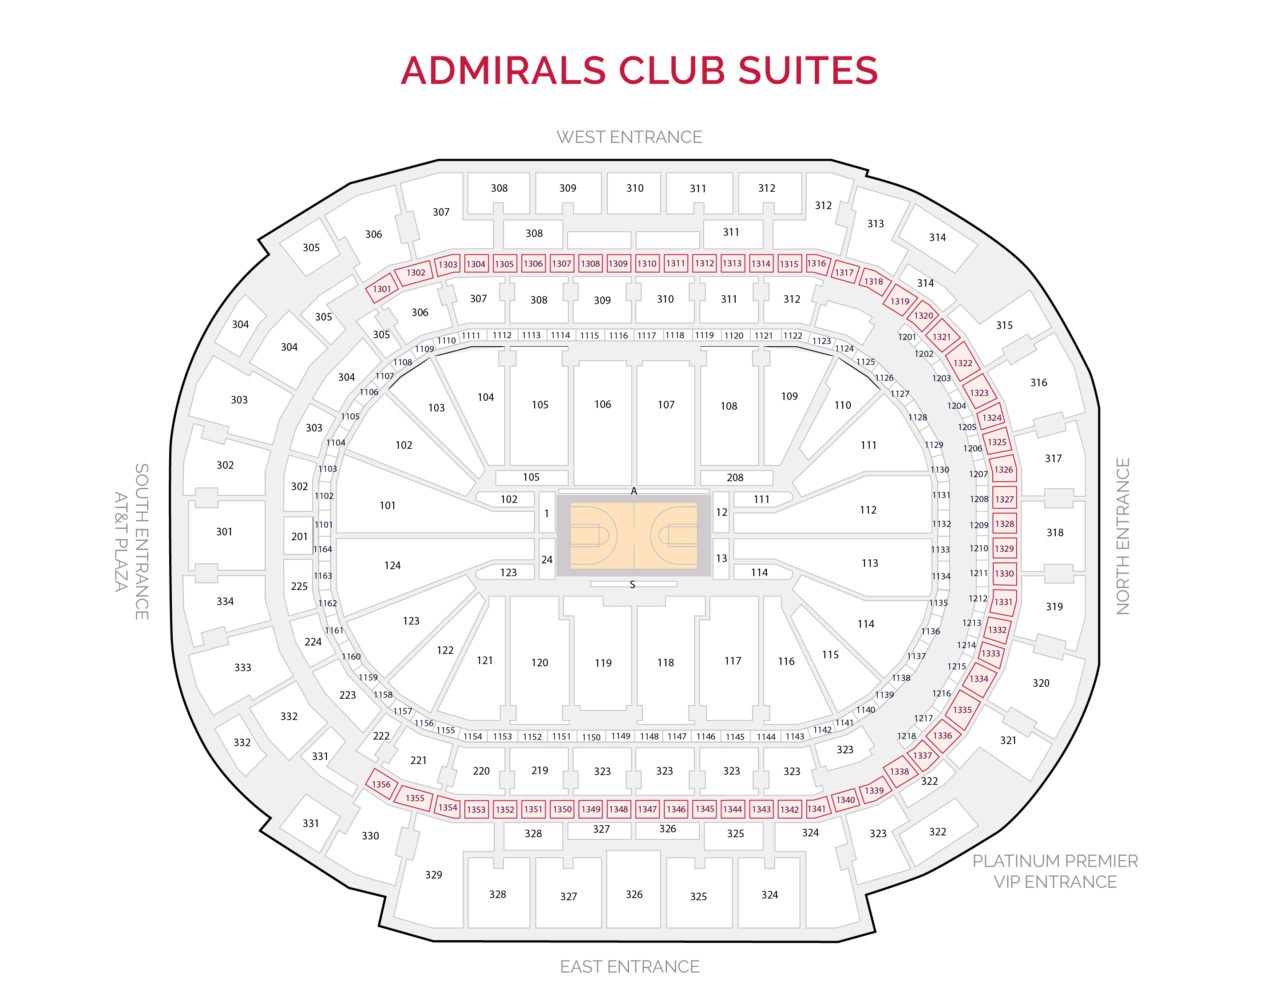 Dallas Mavericks Suites - Admirals Club